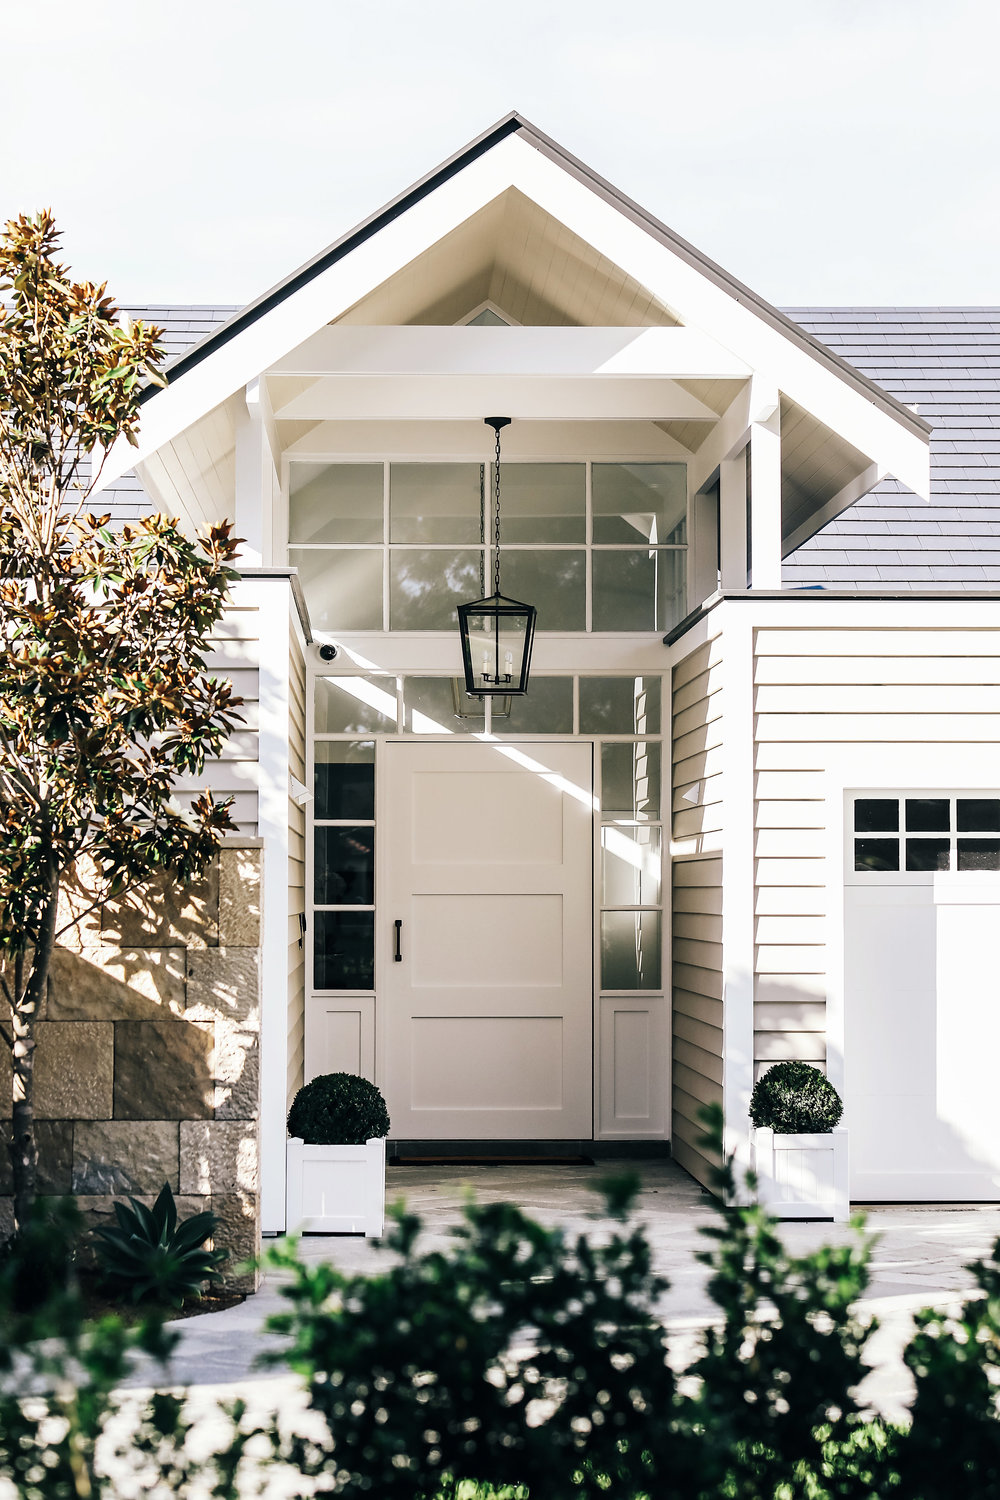 Hamptons Style Entrance Of Luxury Home In Sydney After A Full Renovation